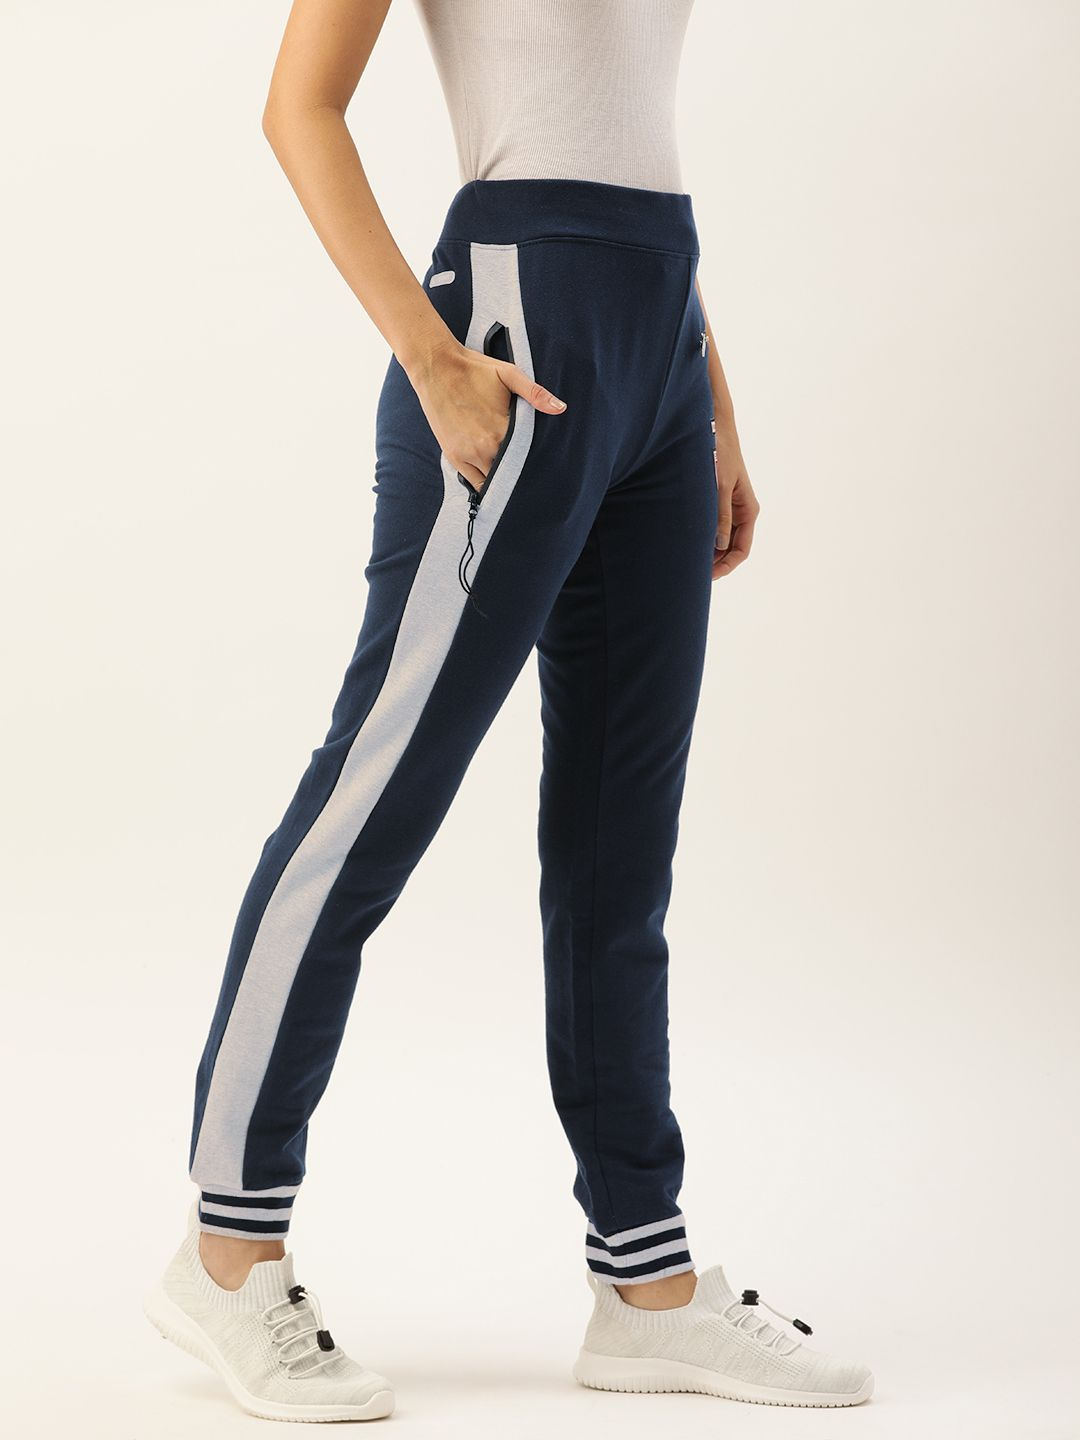 Slumber Jill Navy Joggers with Badges